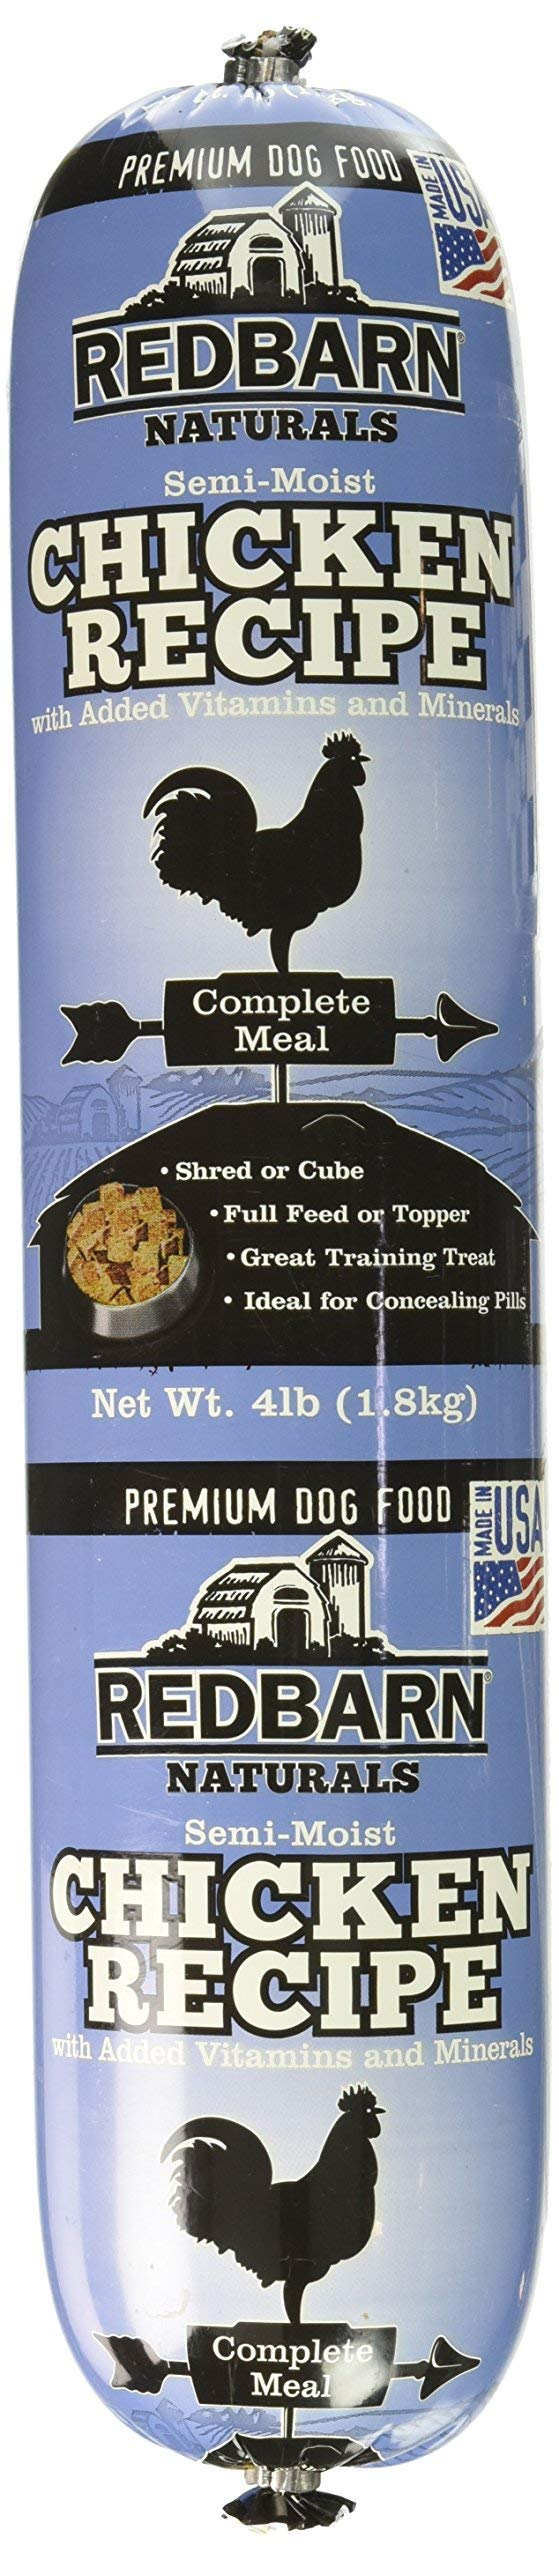 Redbarn Pet Products Chicken and Liver Food Roll 4 lb. roll by Redbarn Pet Products